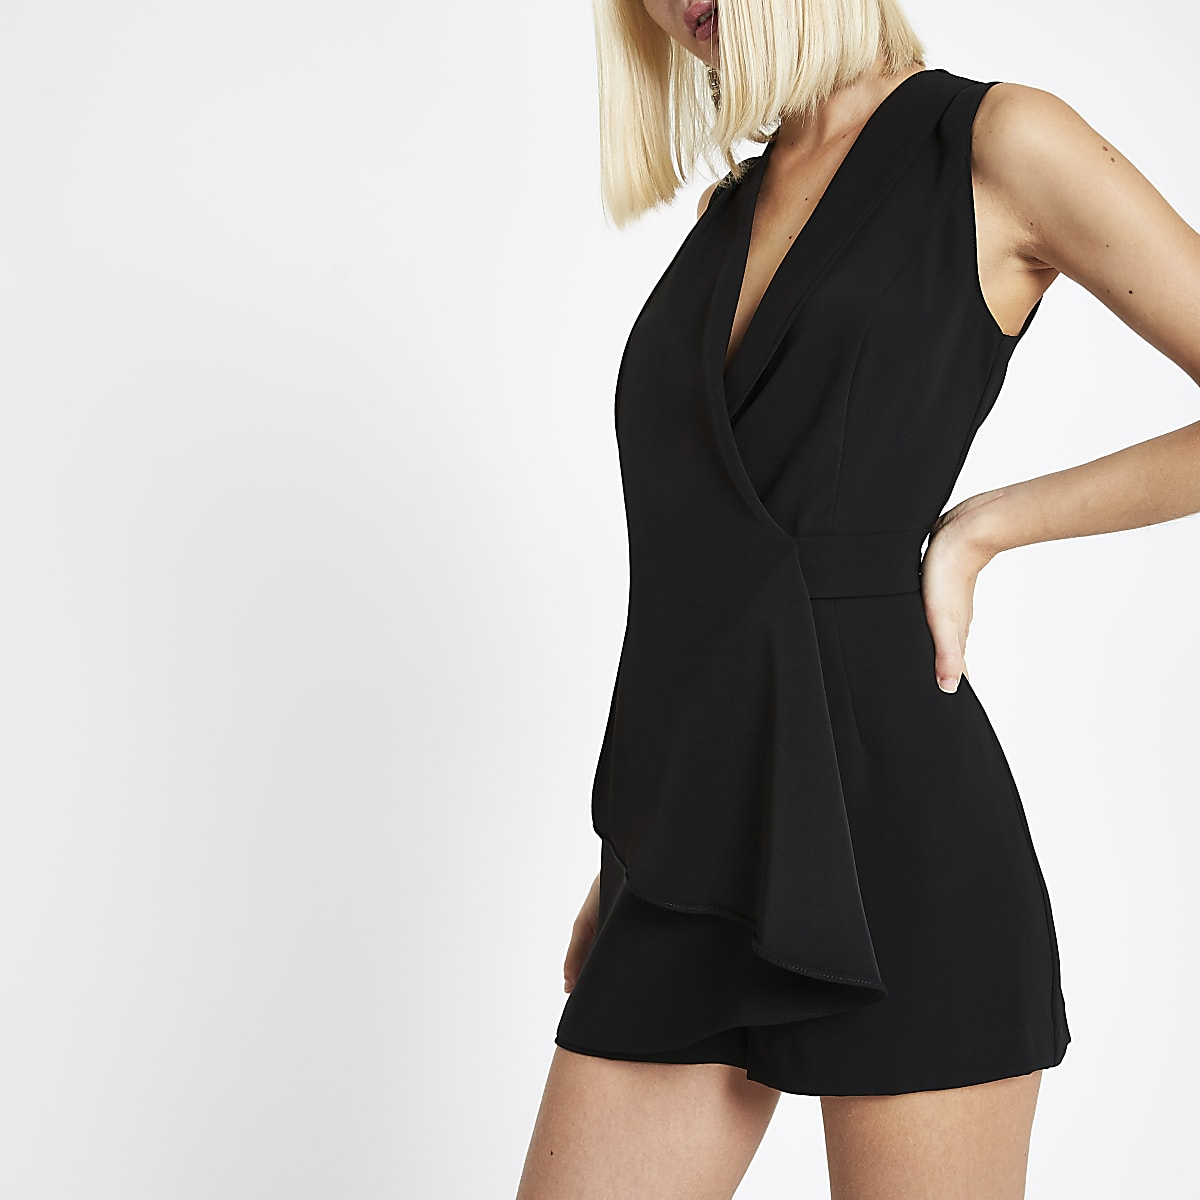 0cce704c2e3 Black wrap front sleeveless playsuit - Playsuits - Playsuits   Jumpsuits -  women